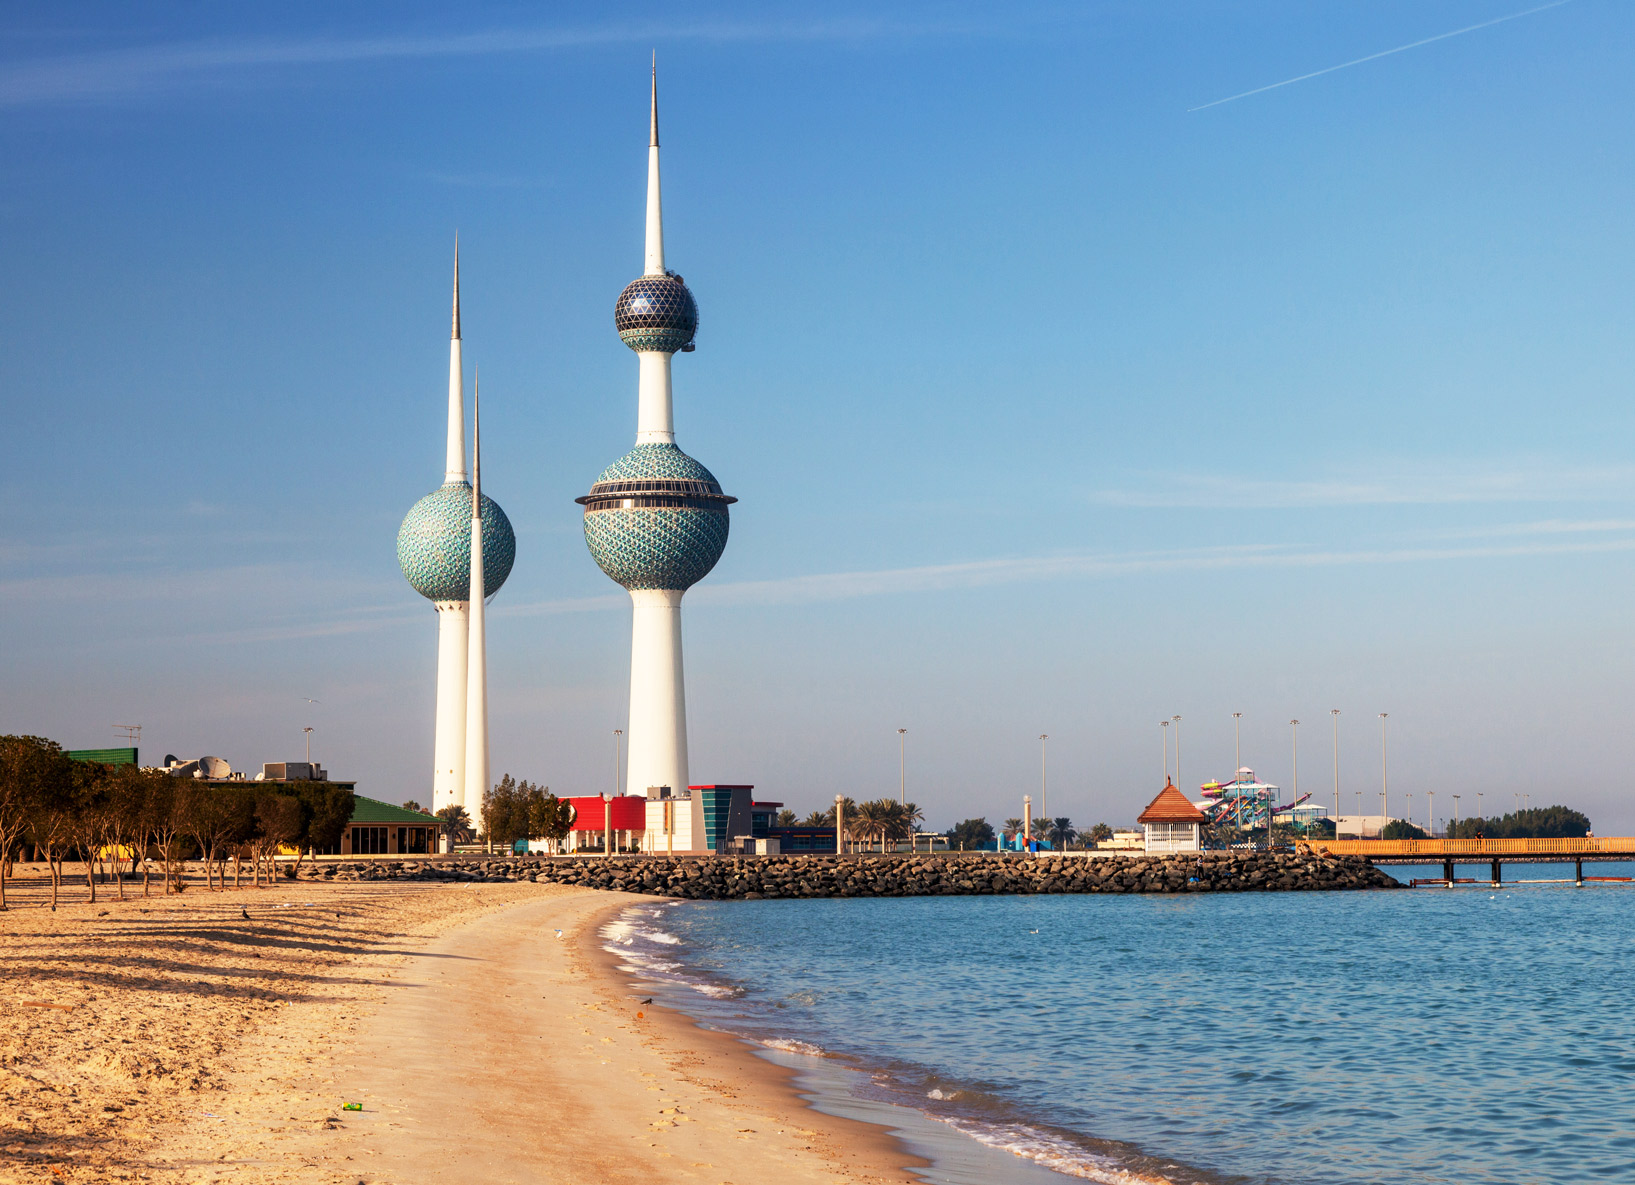 With A New Economic Plan, Kuwait Is Adjusting To A Post-Oil Era